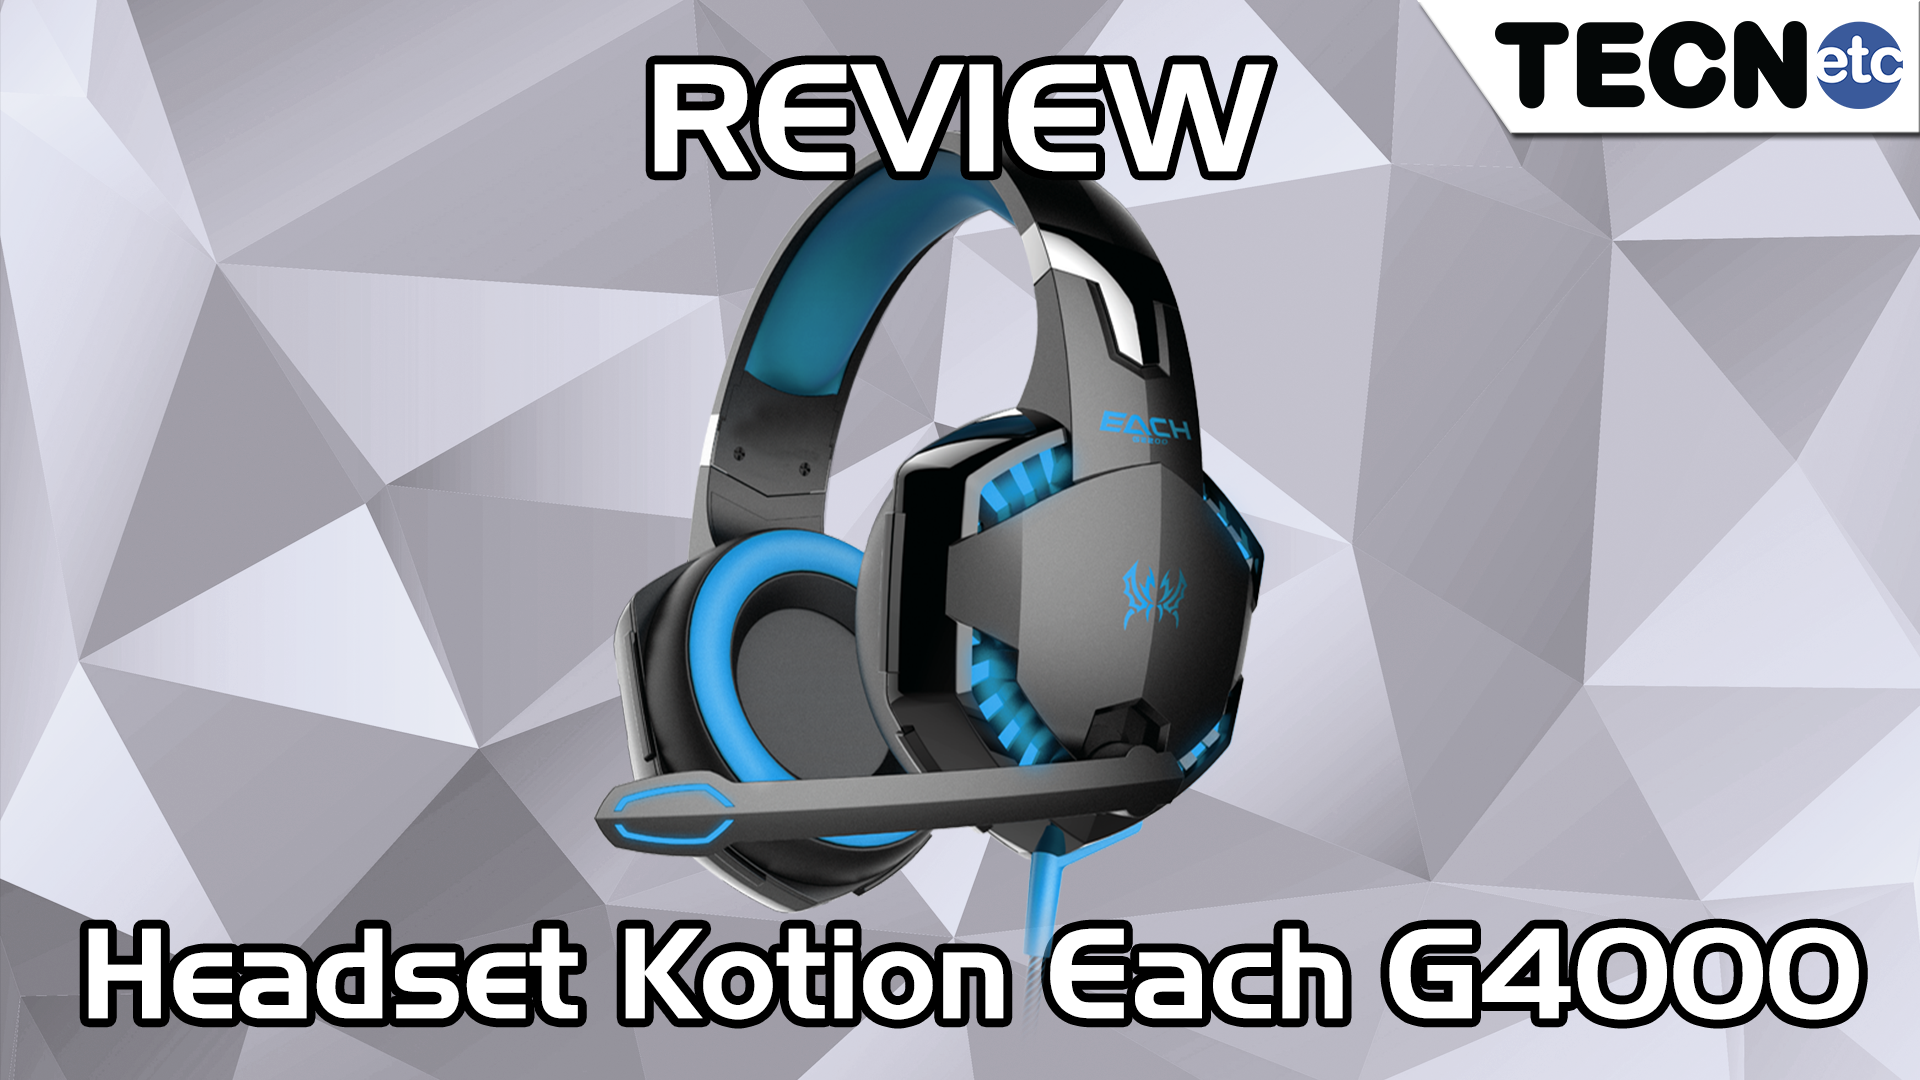 Review Headset Kotion Each G4000 – TECNOetc